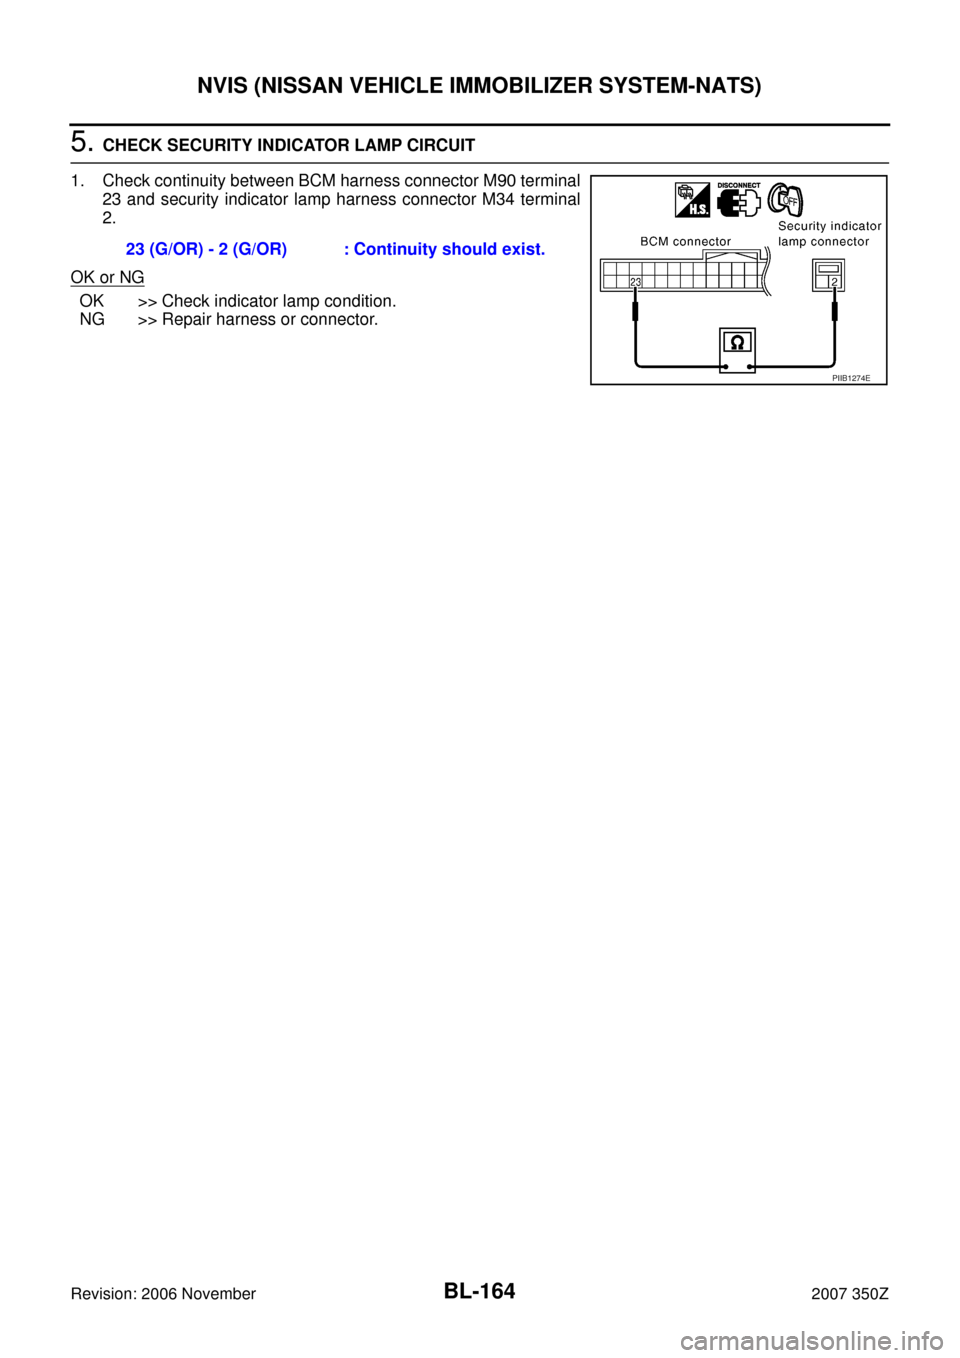 Nissan 350z Immobilizer Diagram Electrical Wiring Diagrams Fuse Box 2007 Z33 Body Lock And Security System Workshop Manual 2004